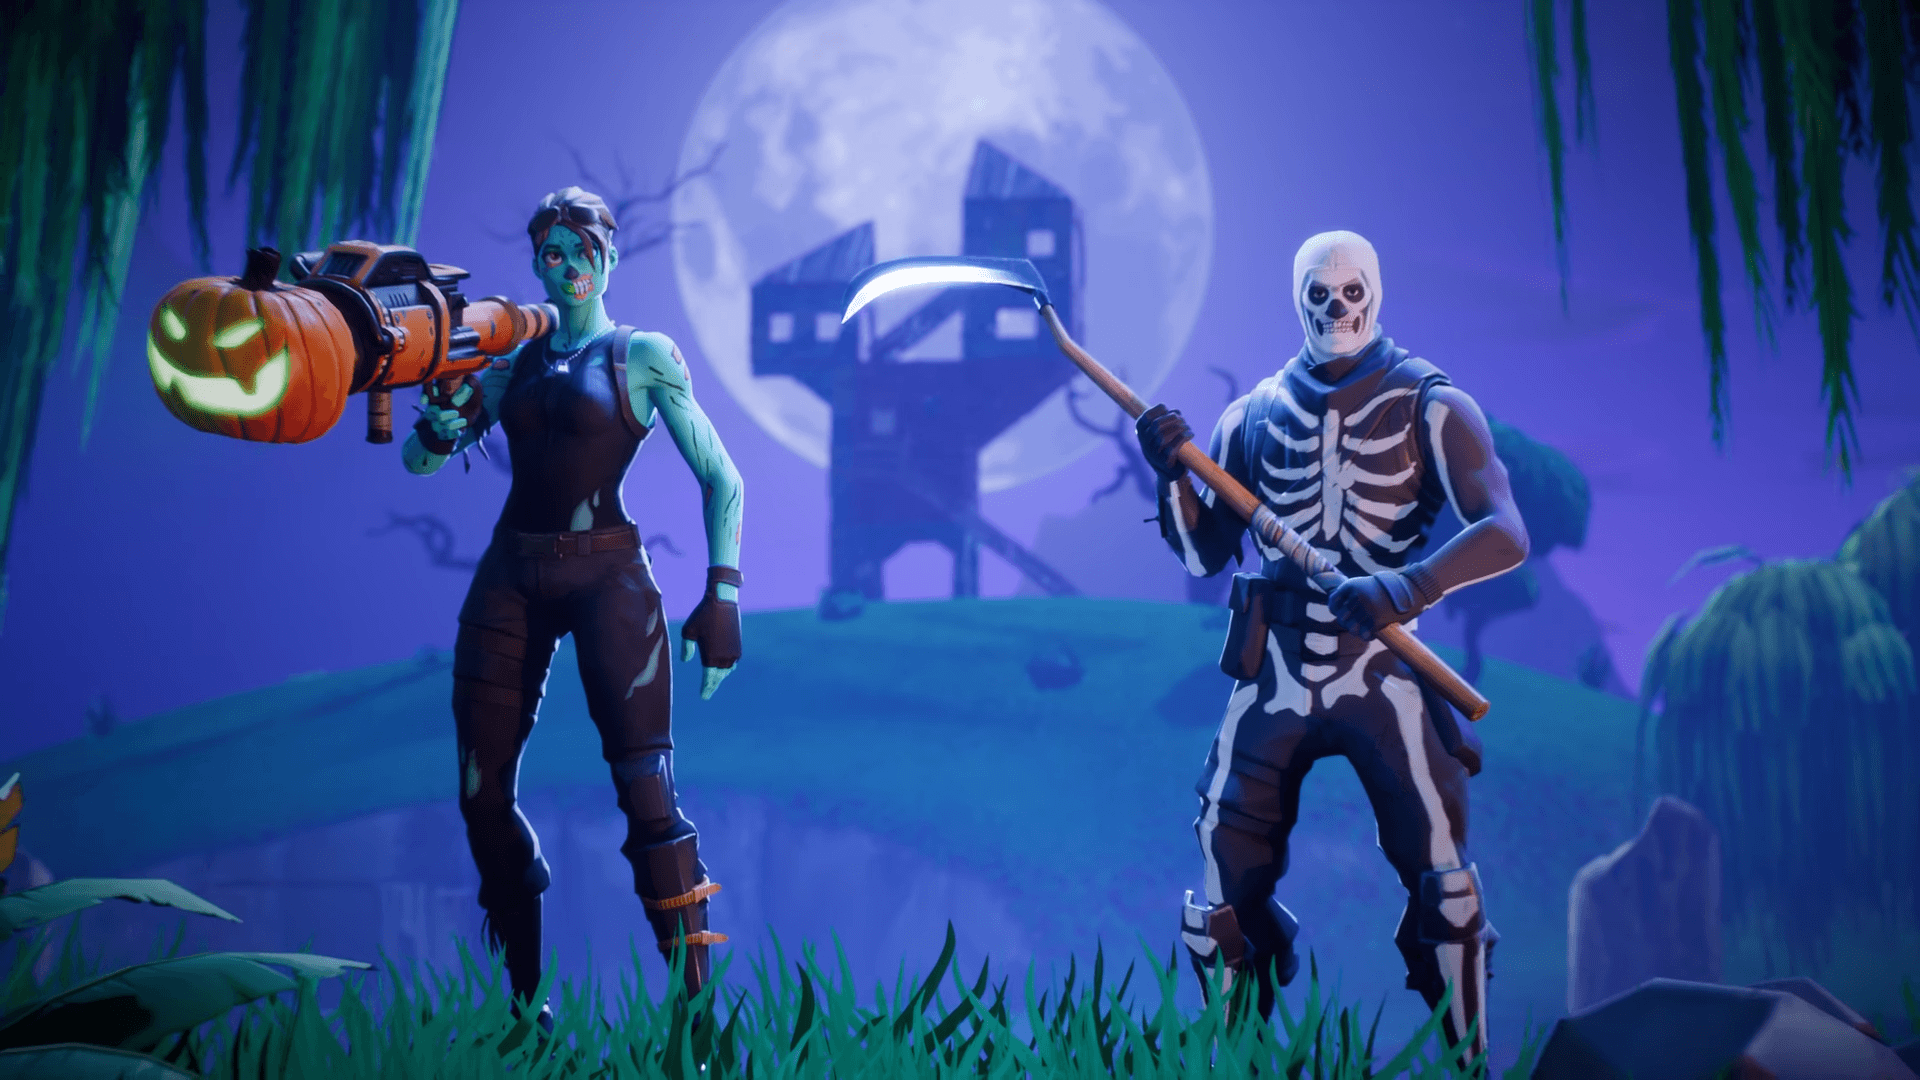 Skull trooper png loading screen. Fortnite costume returns with